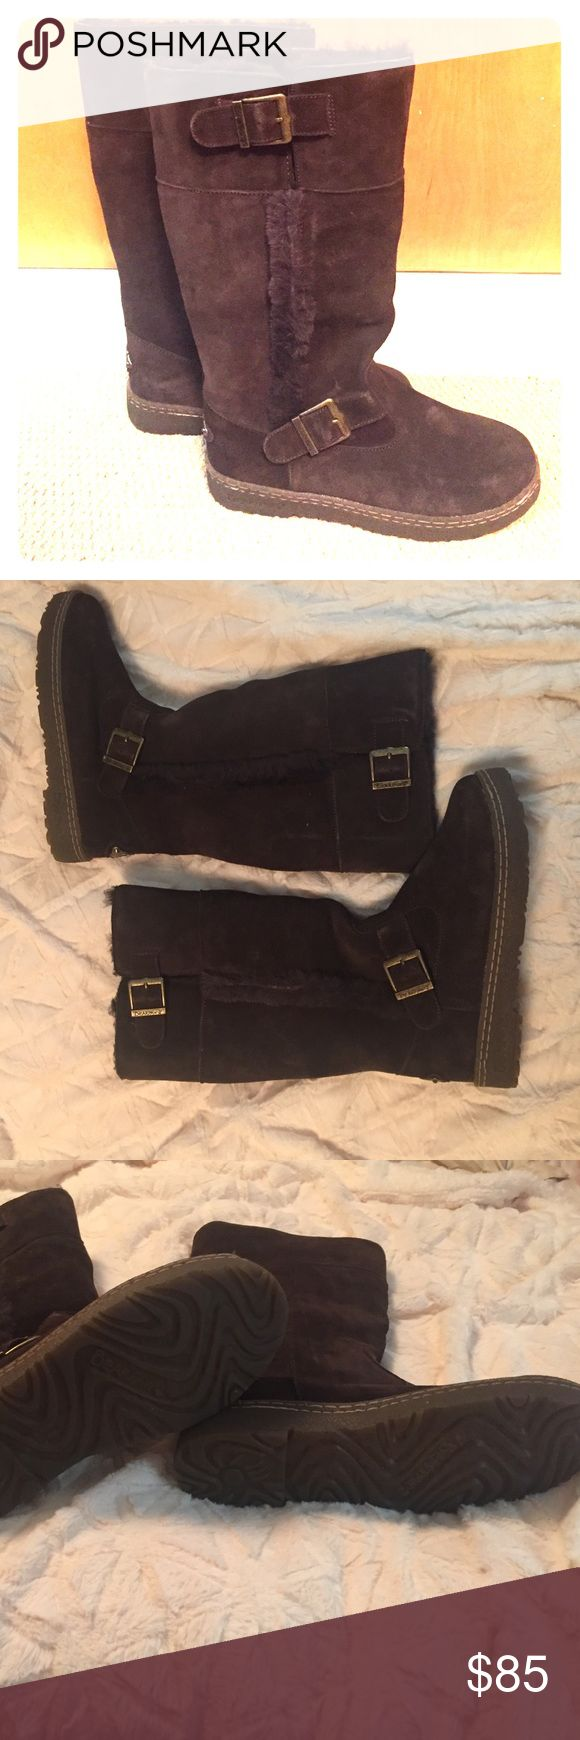 BearPaw Woodbury Boot Women's size 10, color: chocolate, 16 inch shaft, New, never worn BearPaw Shoes Winter & Rain Boots